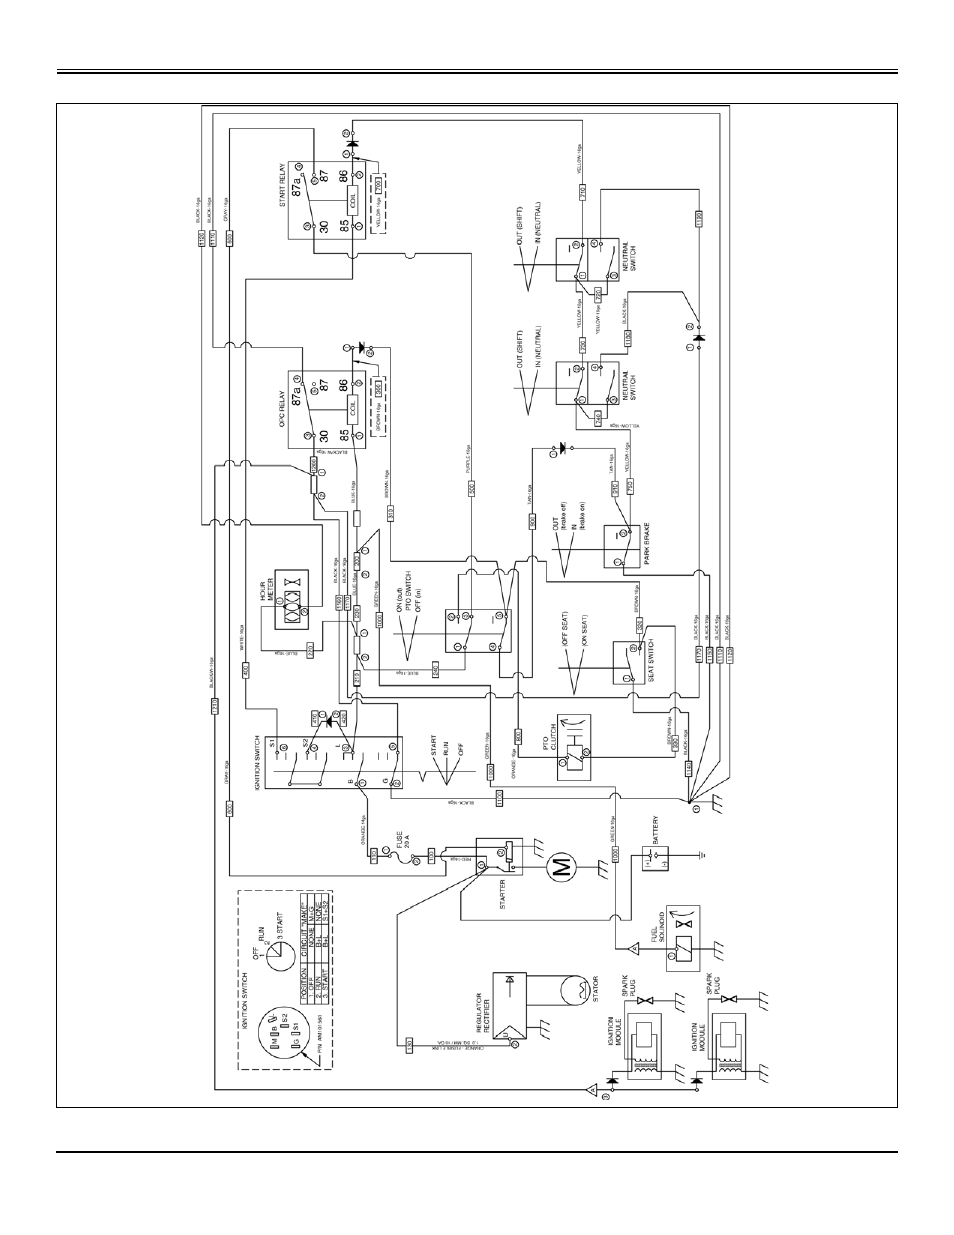 columbia chariot wiring diagram great dane lawn mower wiring diagram | wiring library